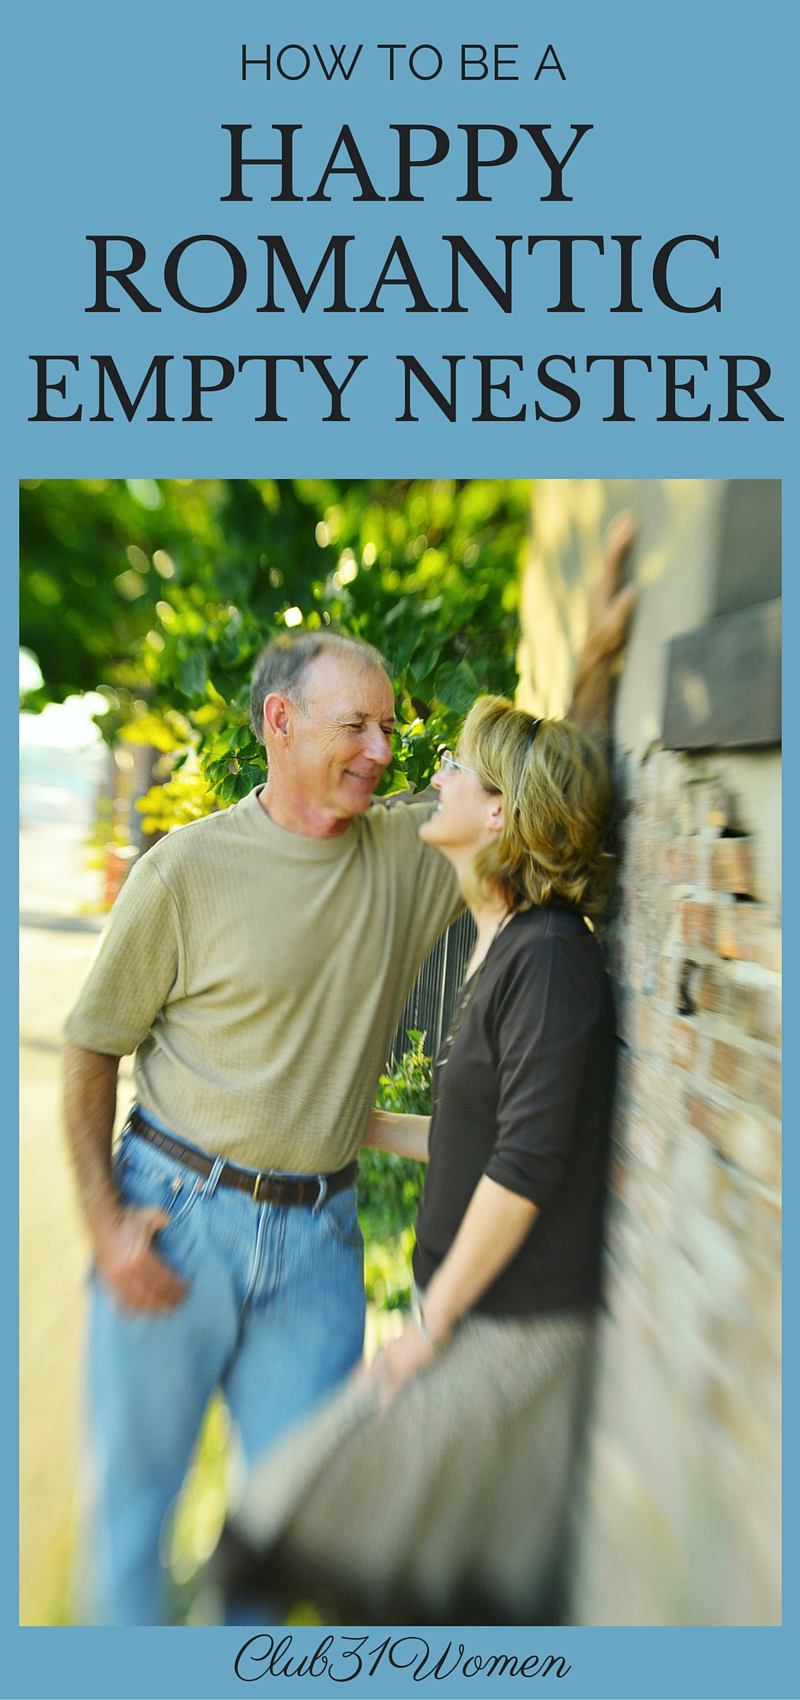 How to Be A Happy, Romantic Empty Nester